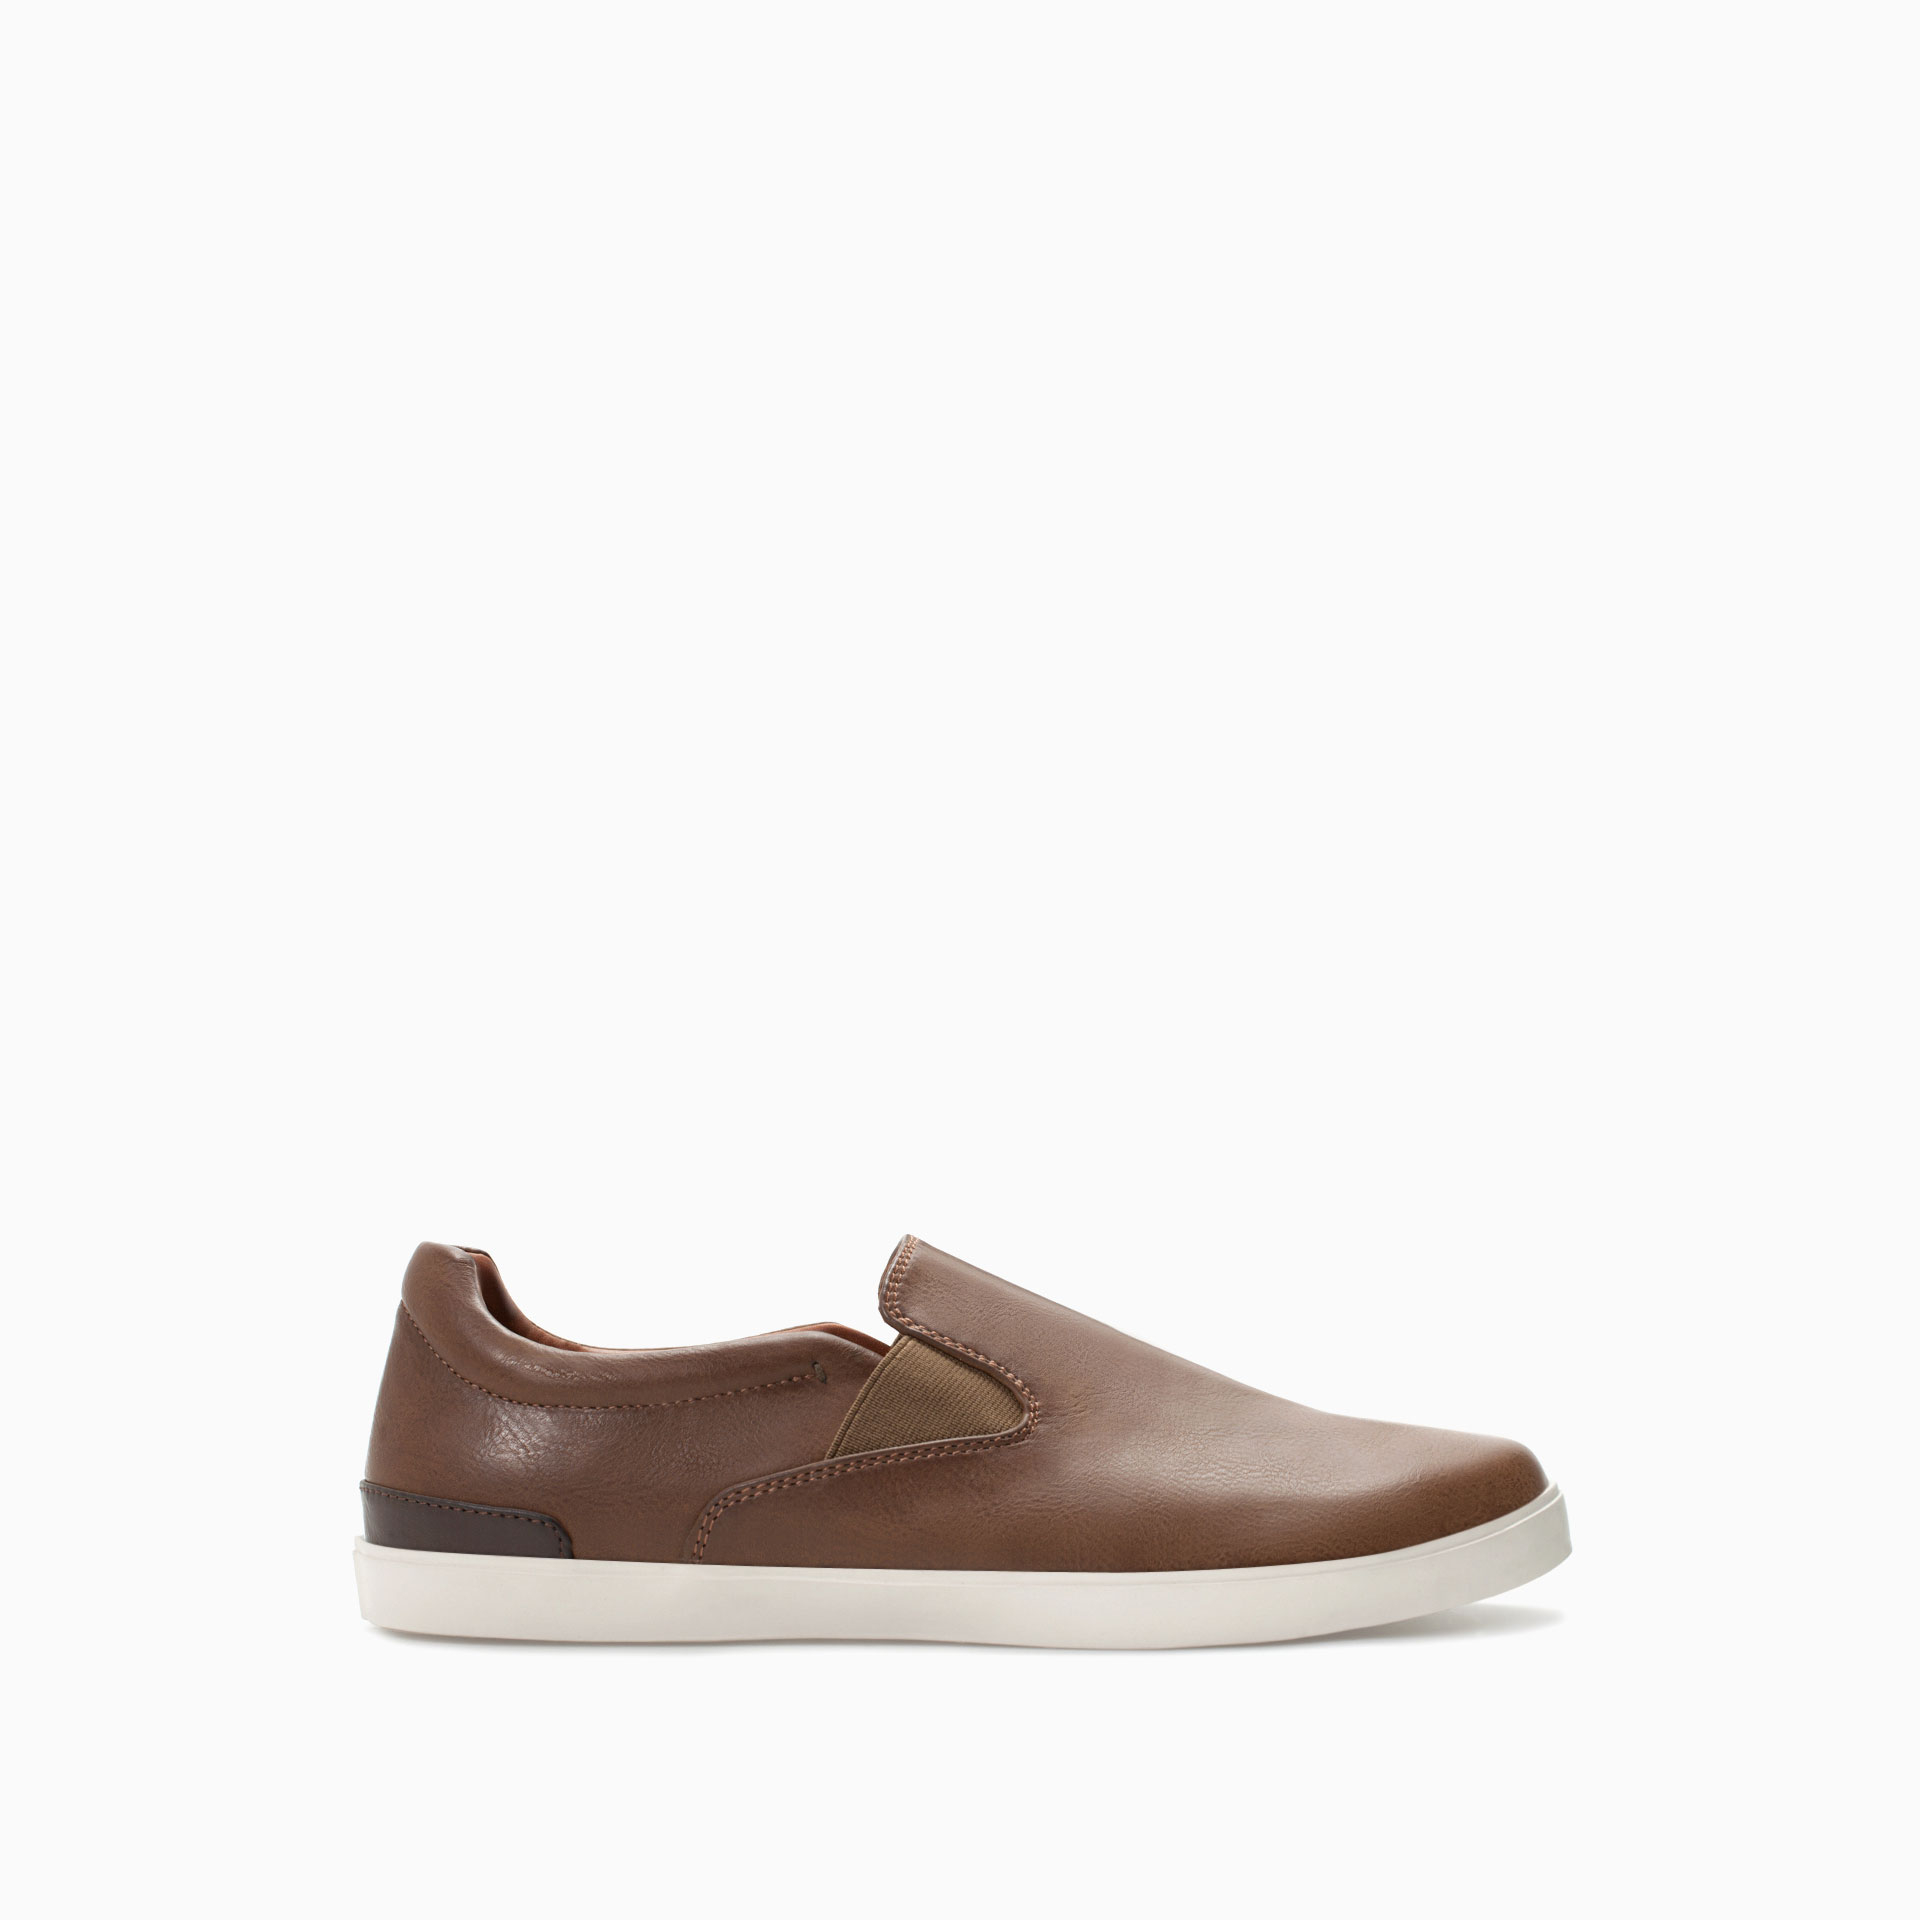 Zara Shoes For 28 Images Zara Brogued Leather Oxford